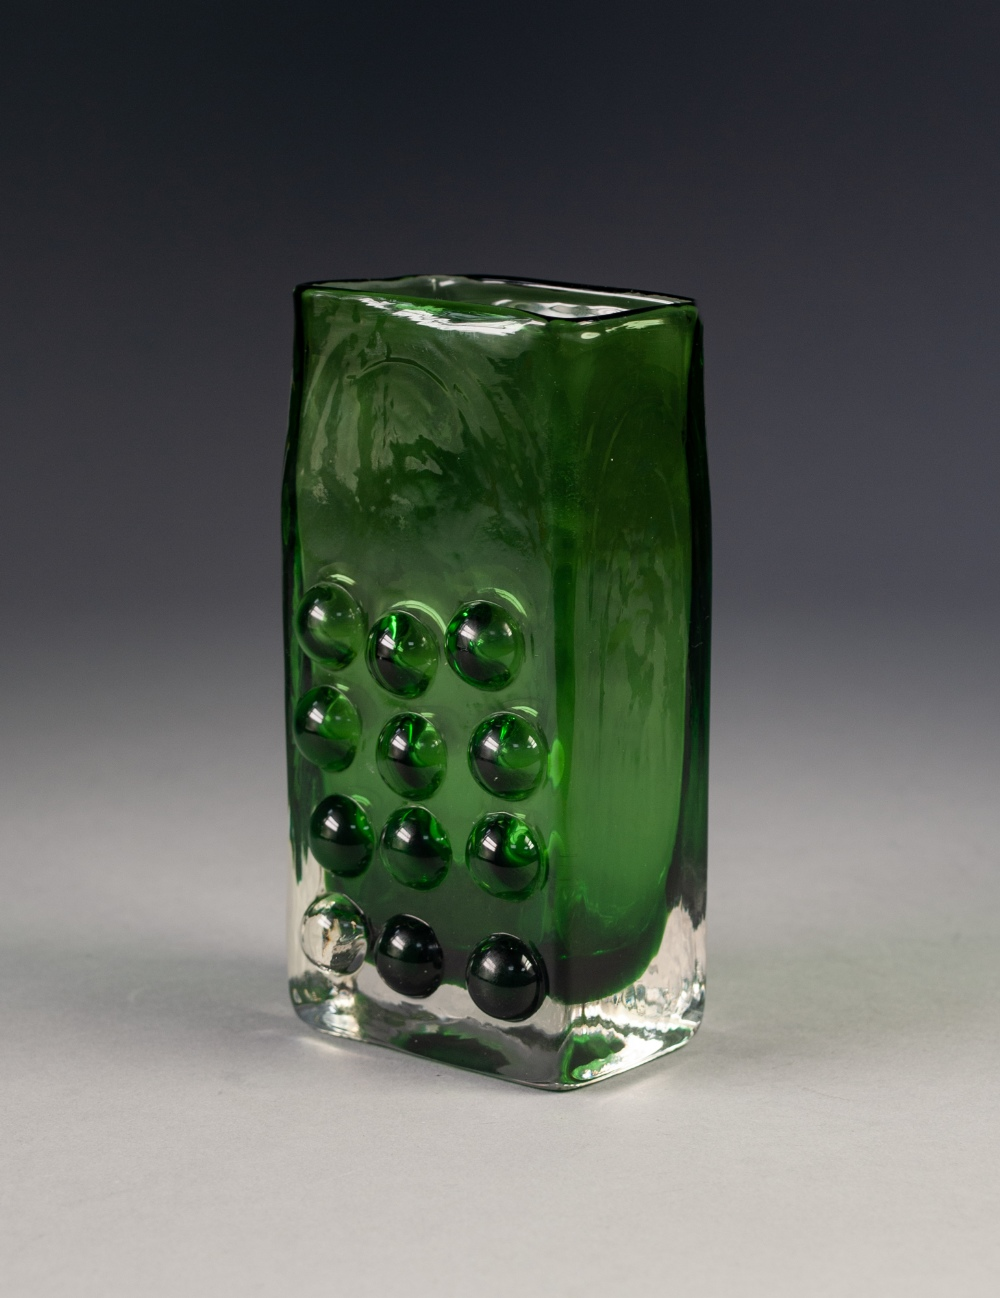 "Lot 38 - GEOFFREY BAXTER FOR WHITEFRIARS GLASS, 1960's GREEN CASED 'MOBILE PHONE' VASE, 6 ½"" (16.5cm) high"